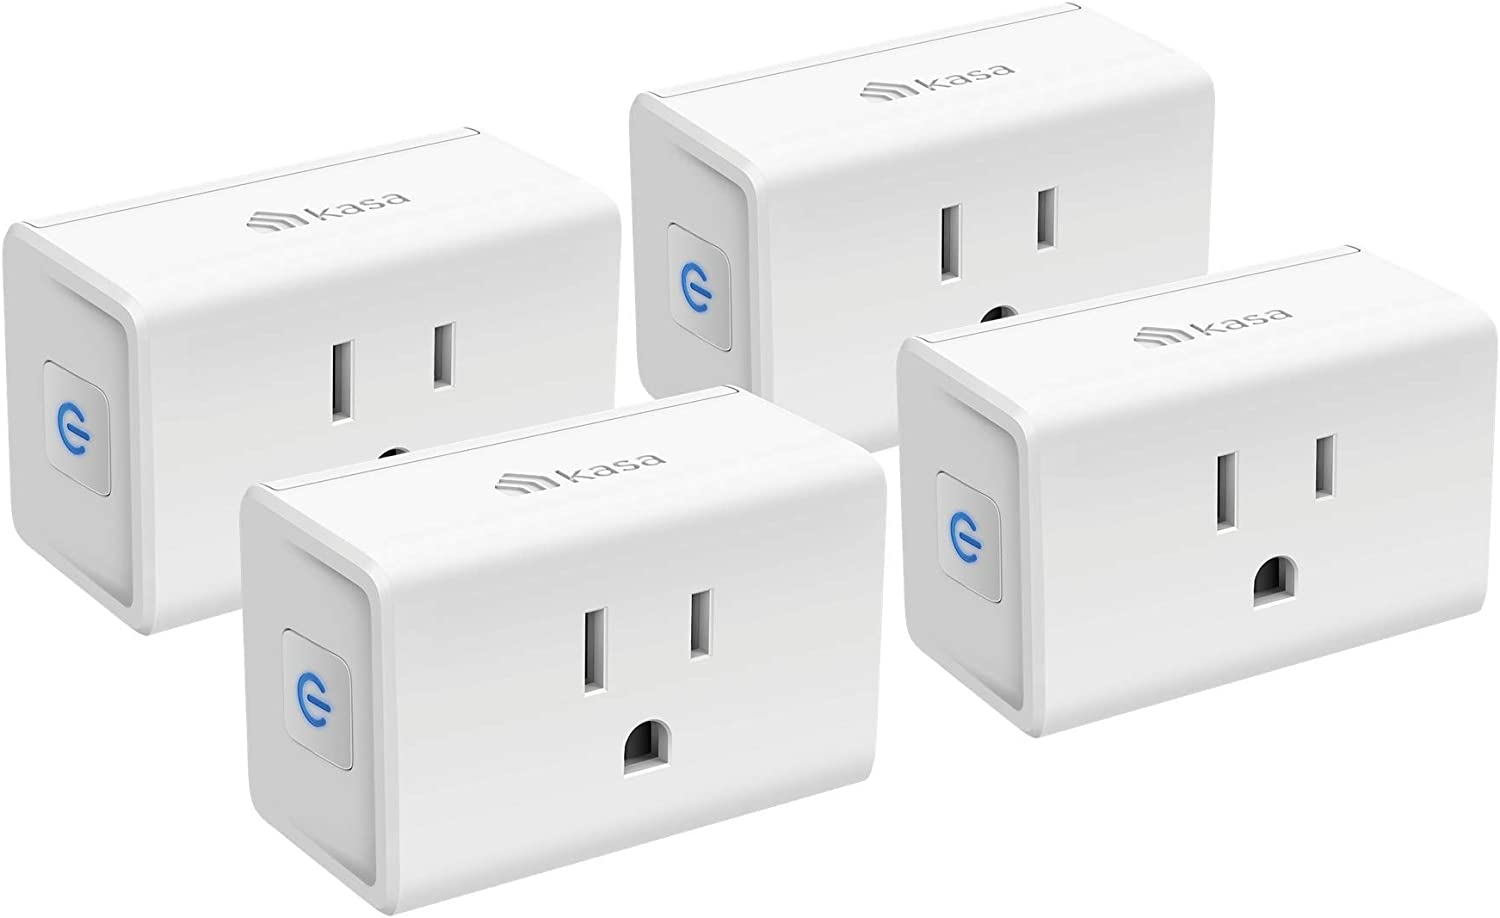 Kasa Smart Plug Mini 15A, Smart Home Wi-Fi Outlet Works with Alexa, Google Home & IFTTT, No Hub Required, UL Certified, 2.4G WiFi Only, 4-Pack(EP10P4)